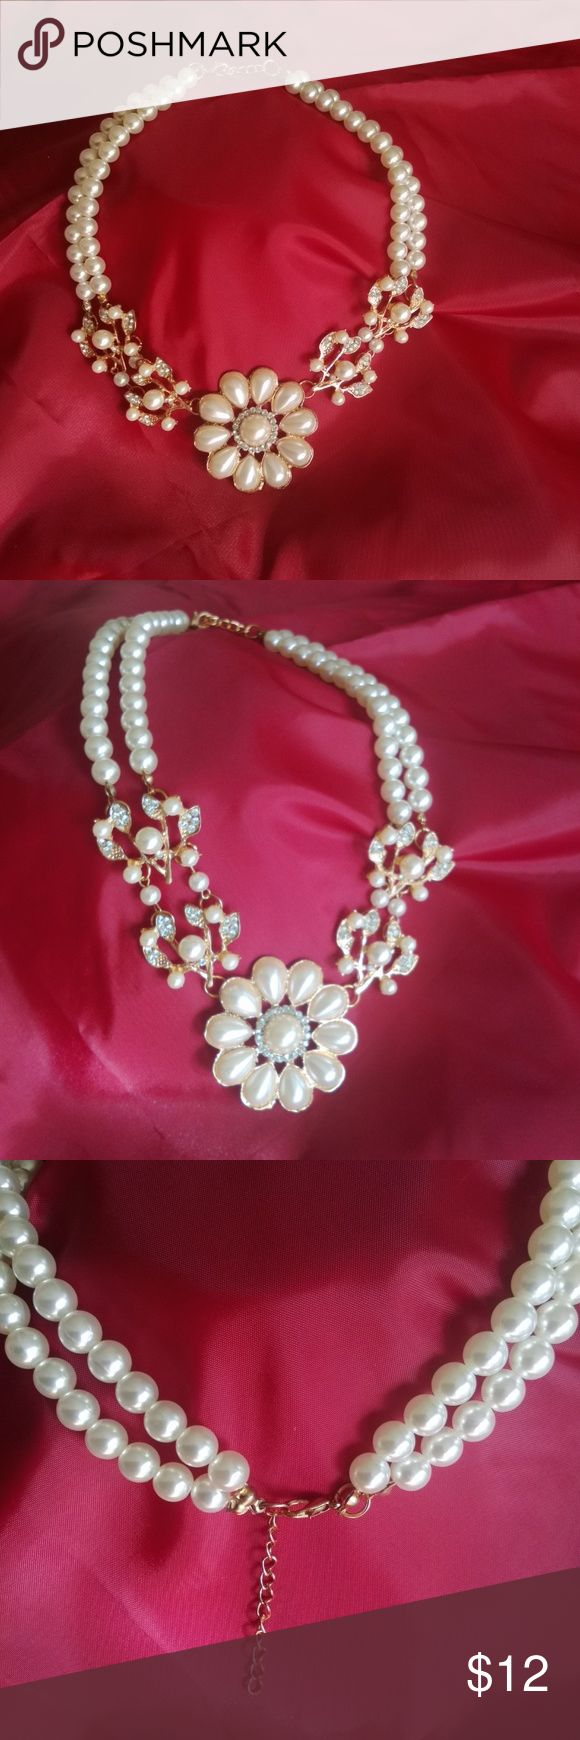 1000+ ideas about Gold Pearl Necklace on Pinterest.